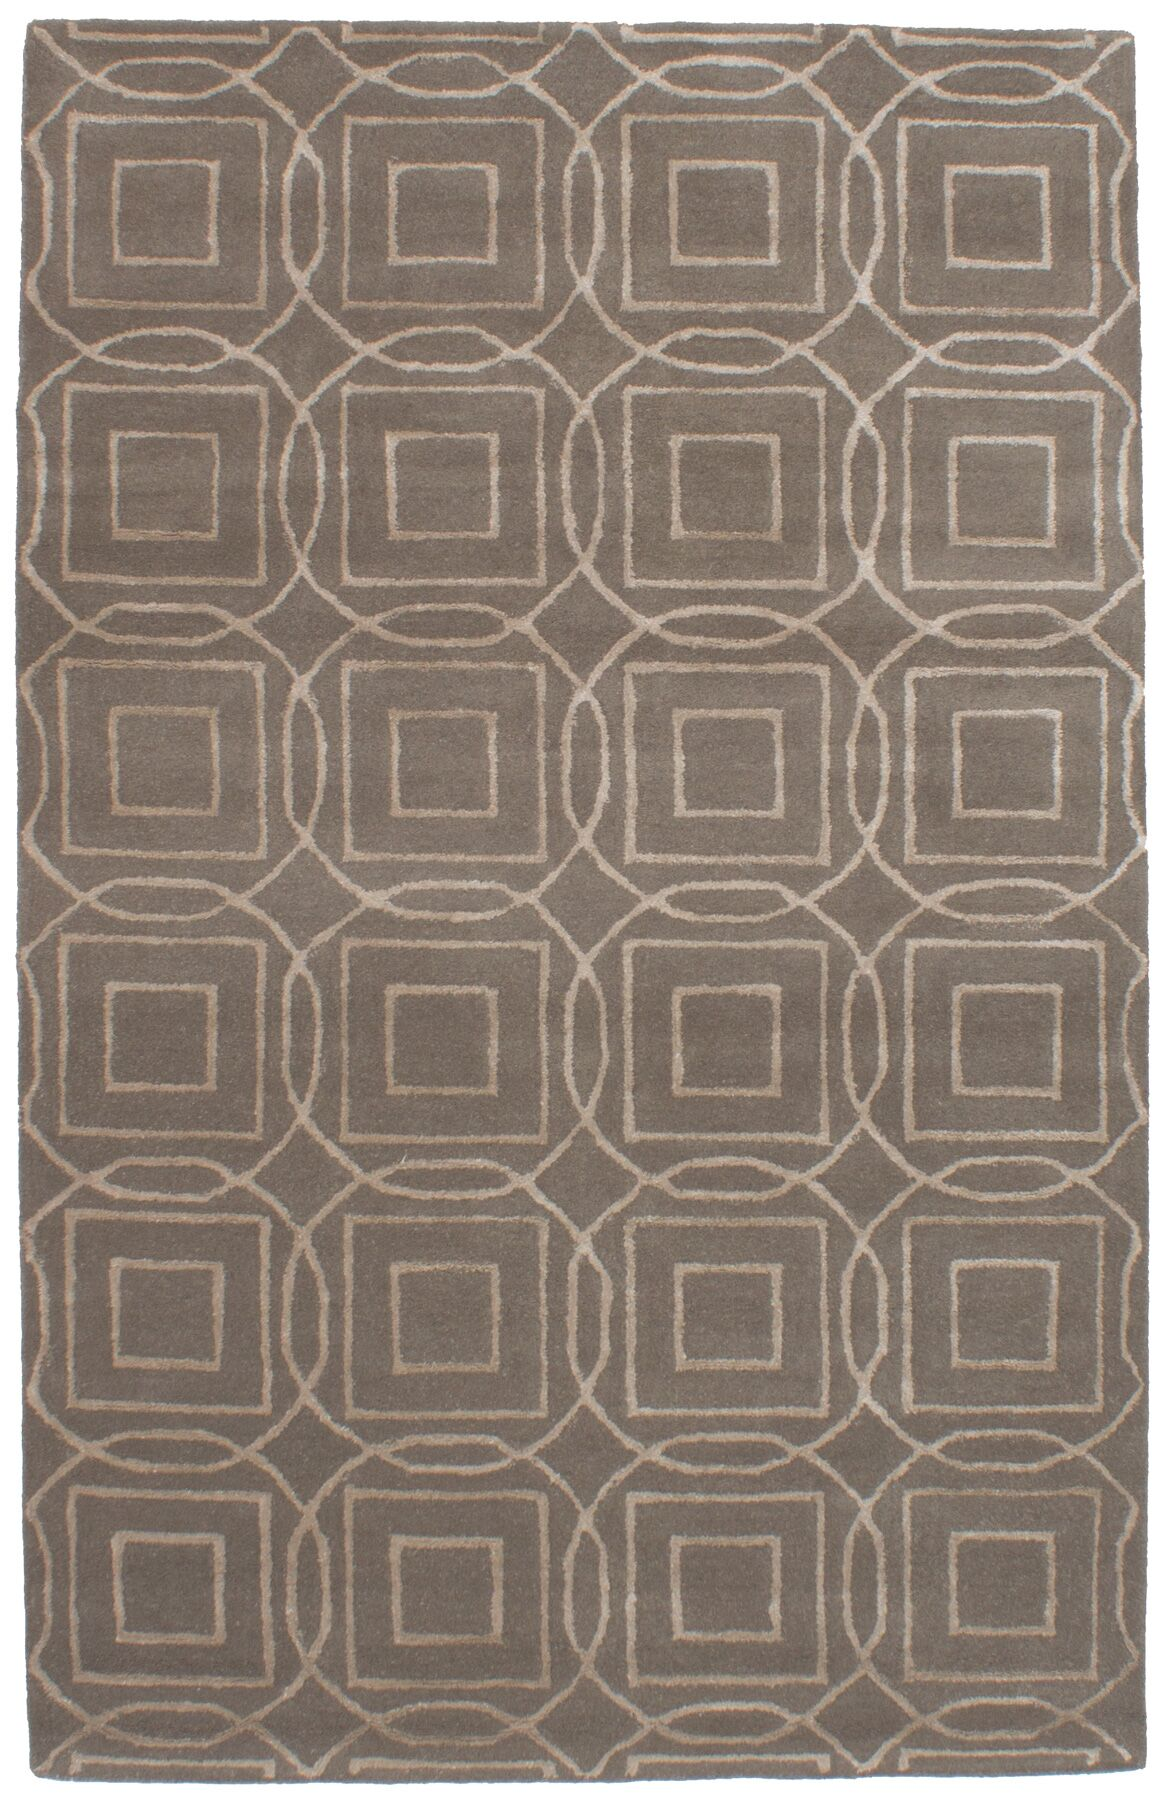 Griffing Hand-Tufted Wool/Silk Dark Gray Area Rug